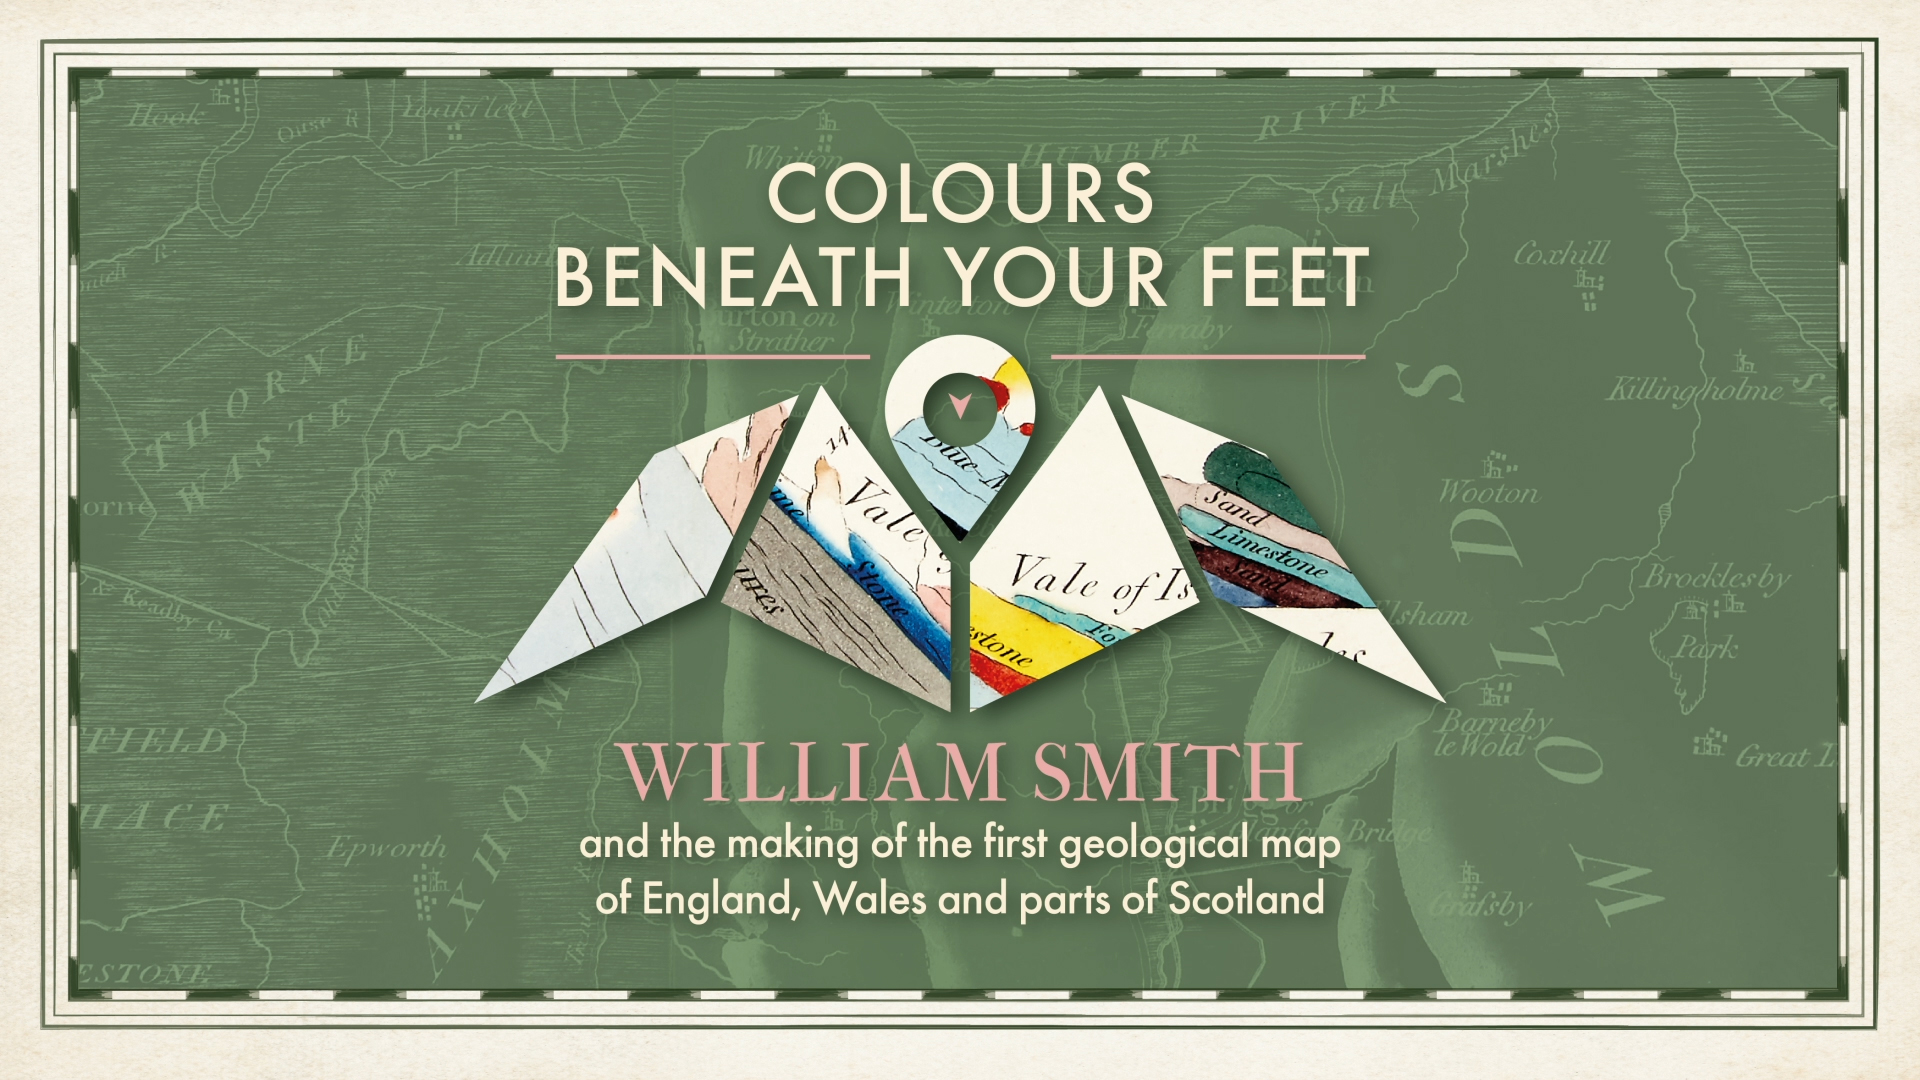 North Lincolnshire Museum - William Smith - Colours Beneath Your Feet